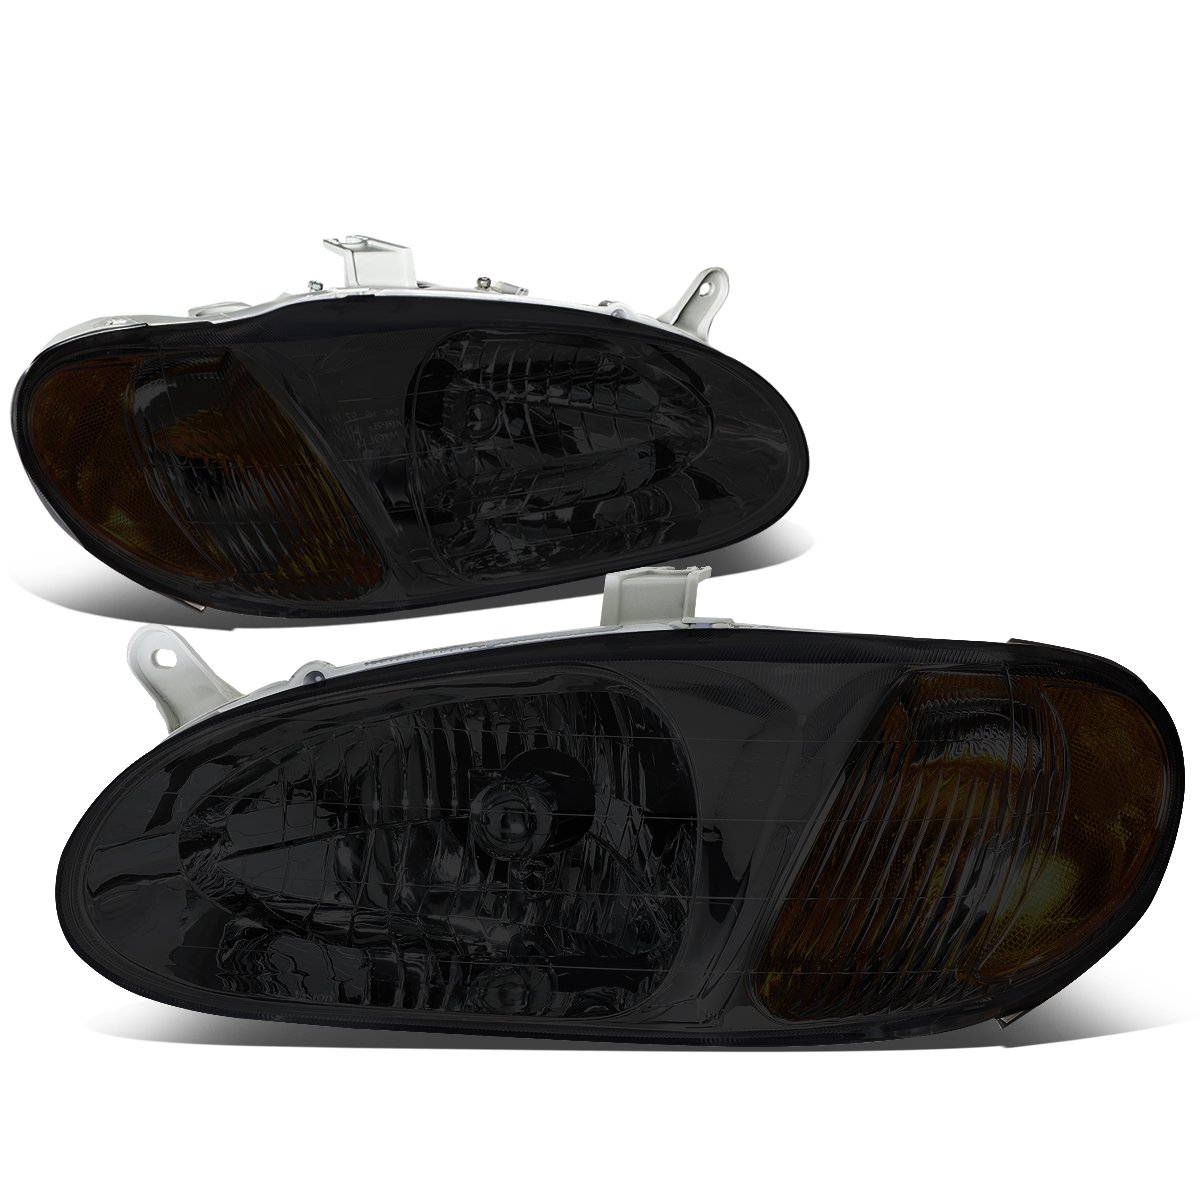 DNA Motoring HL-OH-058-SM-AM Pair Smoked//Amber Headlight For 98-01 Sephia